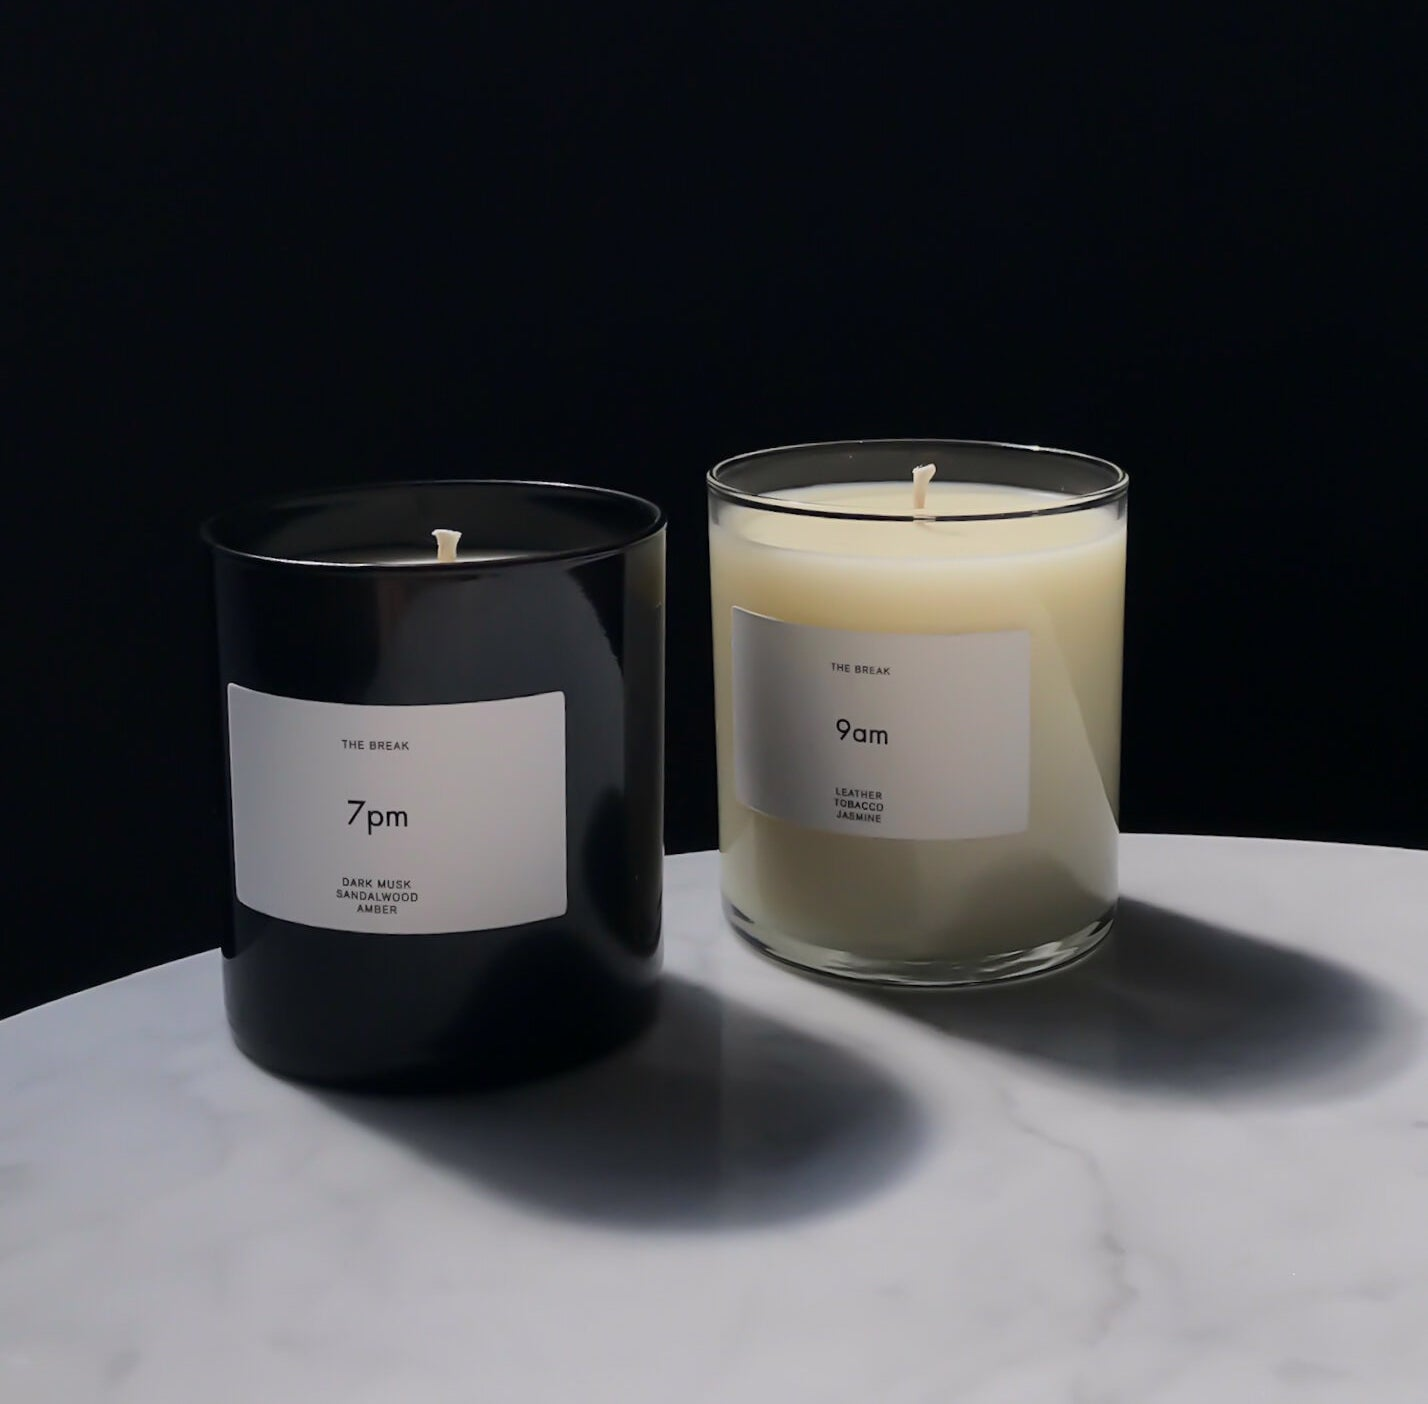 the 7pm candle and the 9am candle on a marble surface